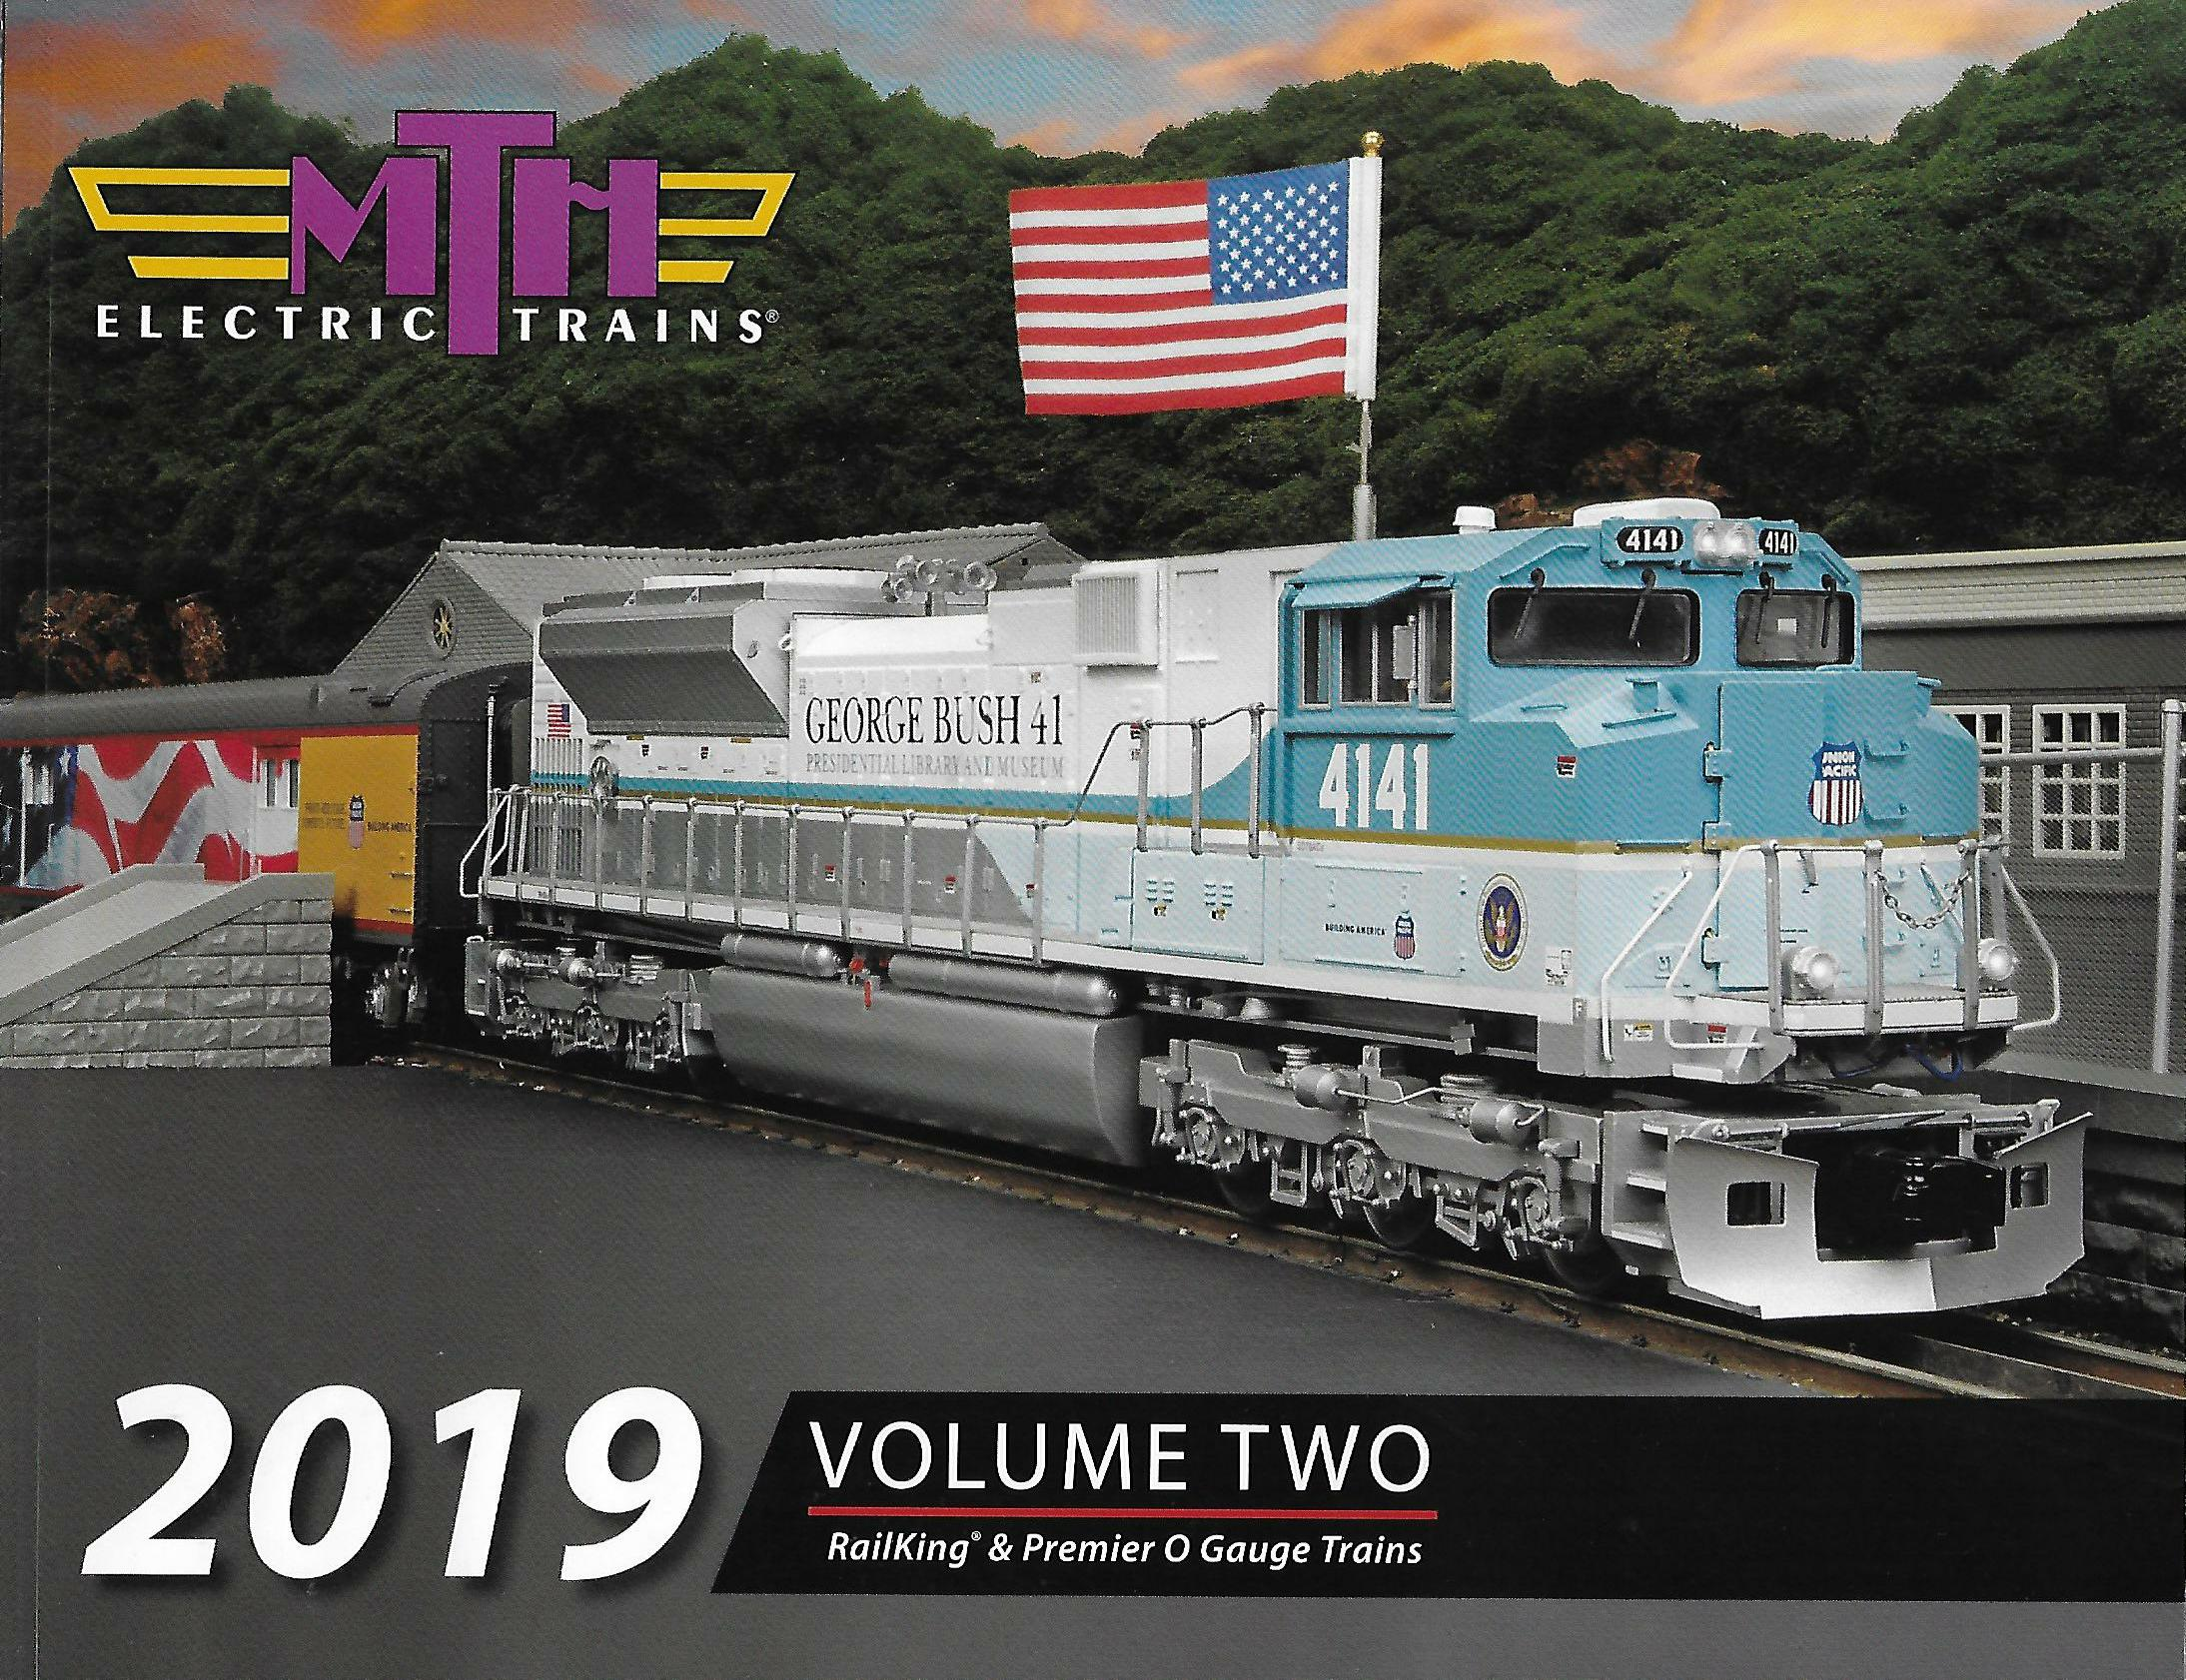 MTH 2019 Volume Two Catalog image